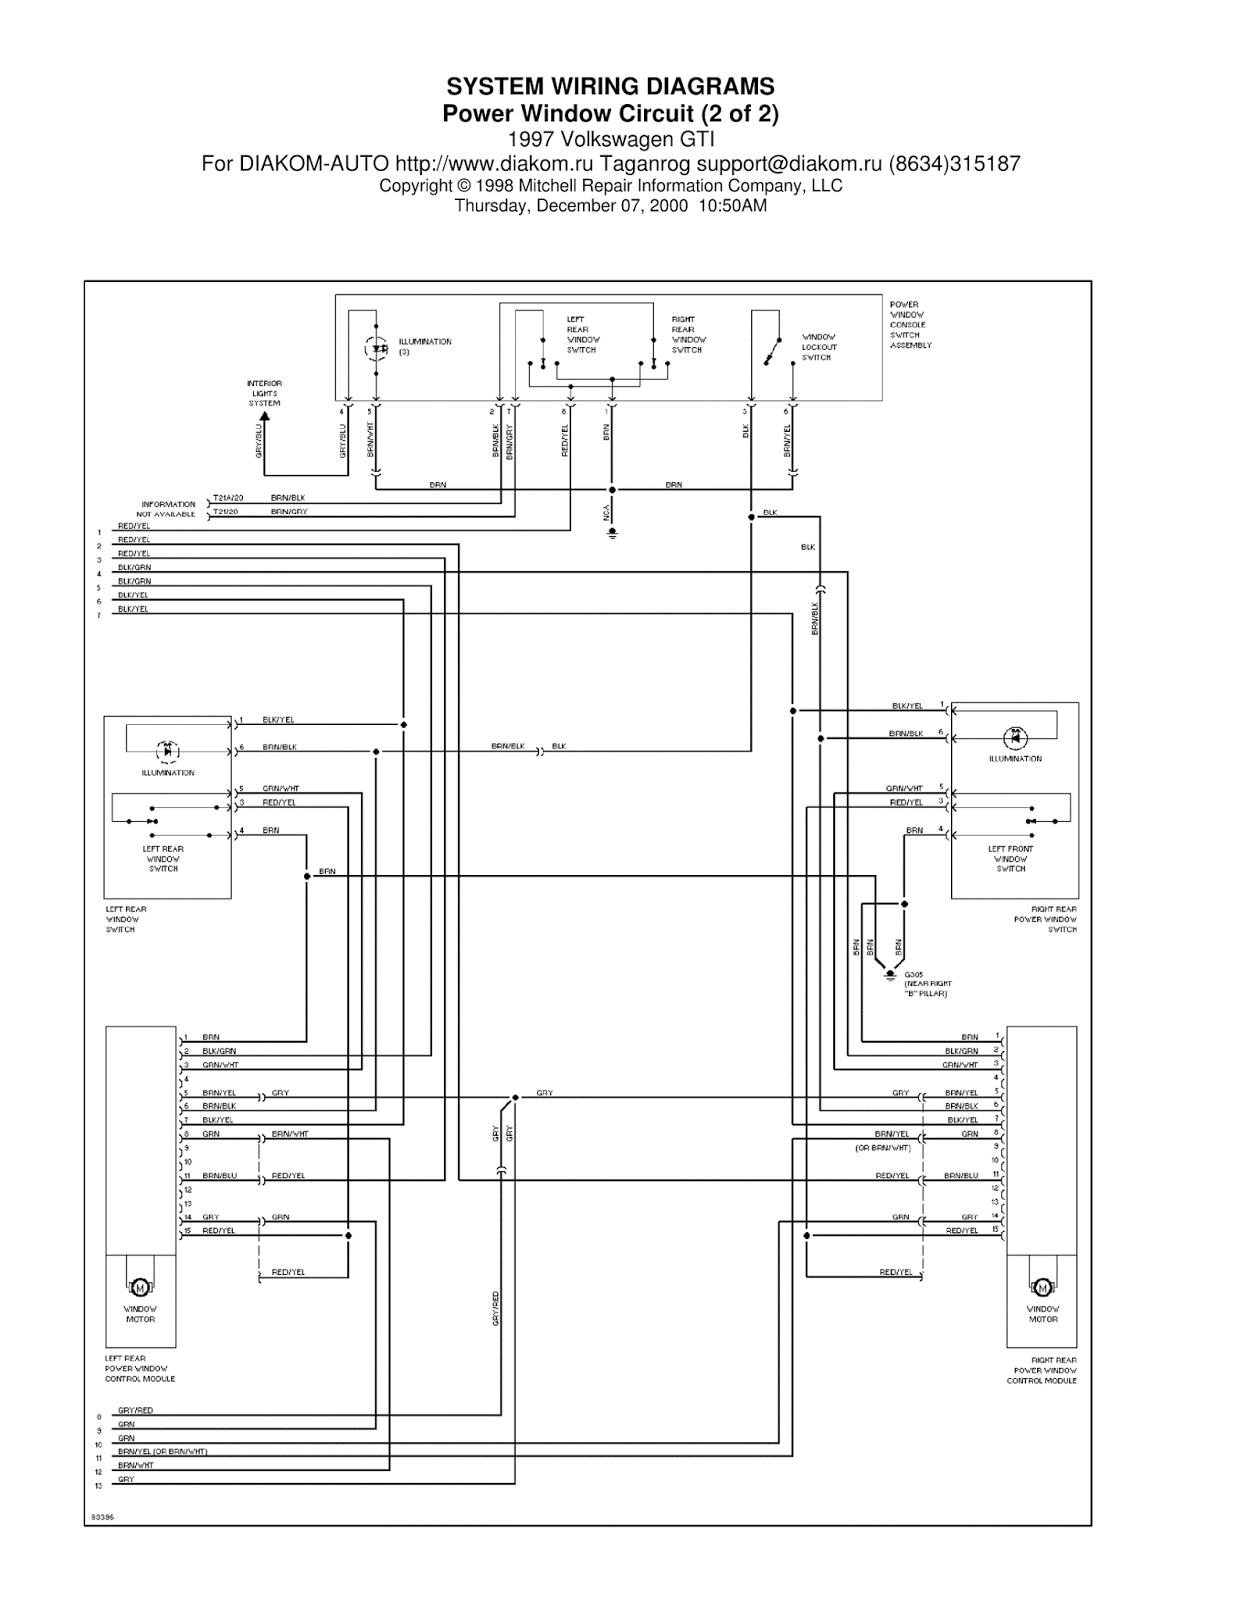 69 camaro power window wiring diagram 69 wiring diagrams power window wiring diagram 1997 %2bvw%2bgolf%2bgti%2bpower%2bwindow%2bcircuit%2b2